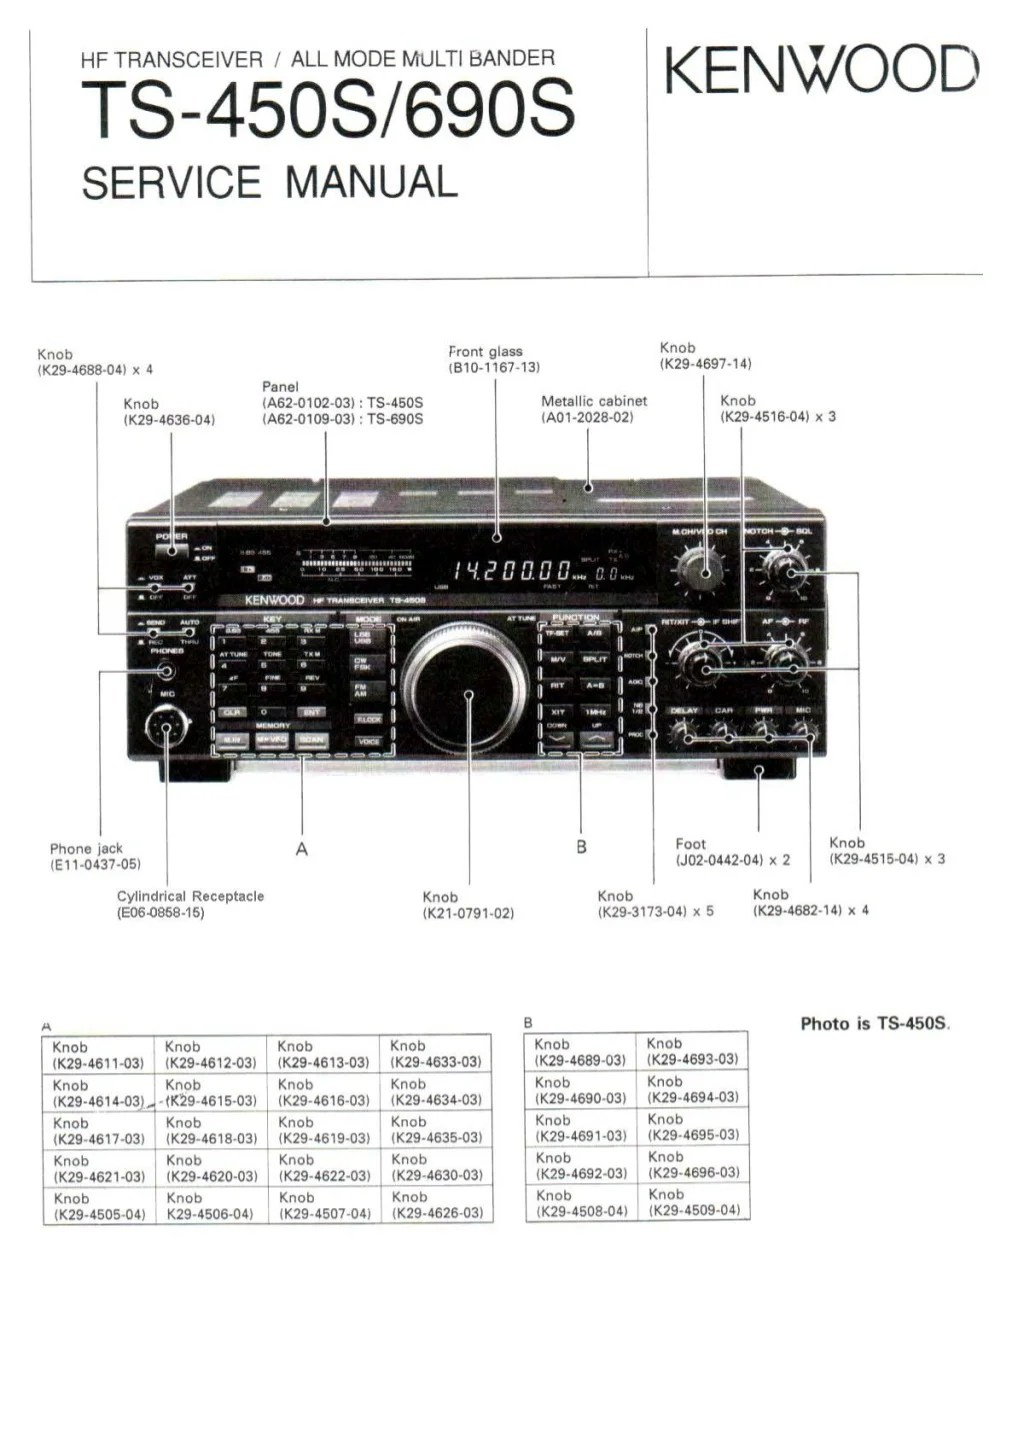 boss rt3 wiring diagram stb9602 control wiring libraryboss rt3 wiring  diagram stb9602 #16